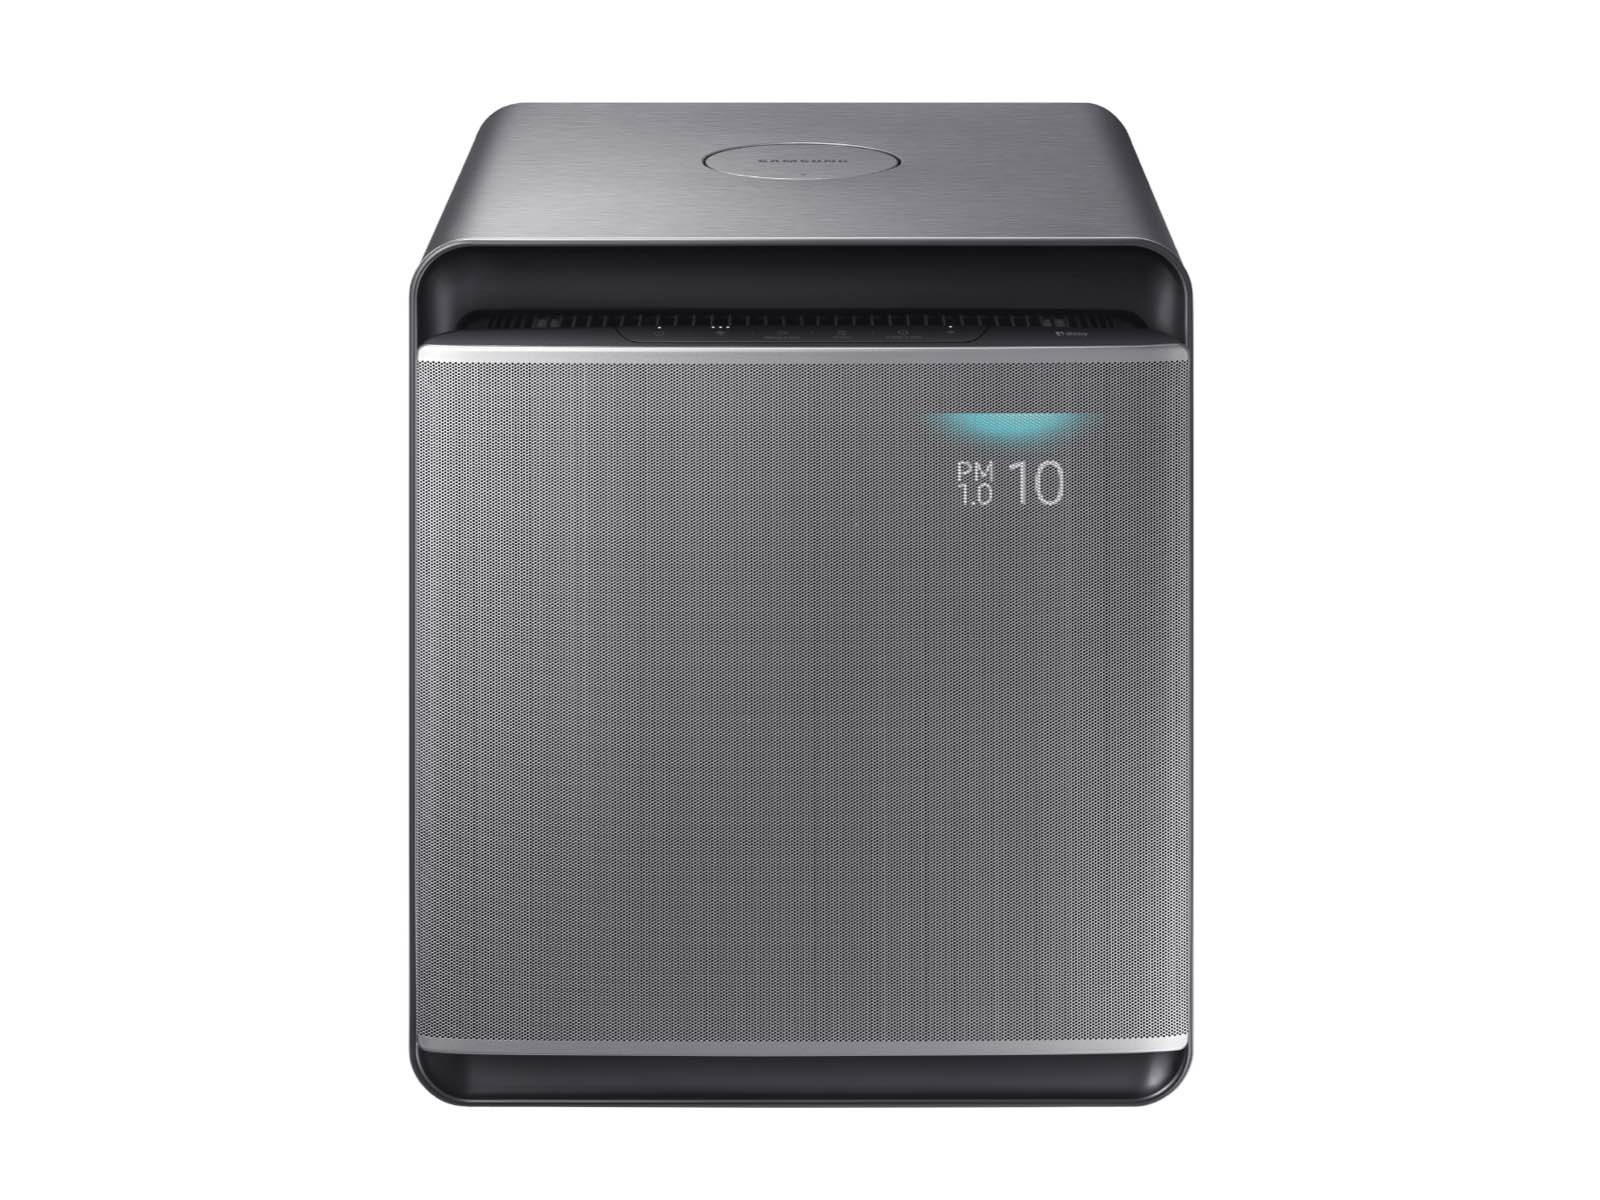 Samsung Cube Air Purifier with Wind-Free Air Purification in Honed Silver